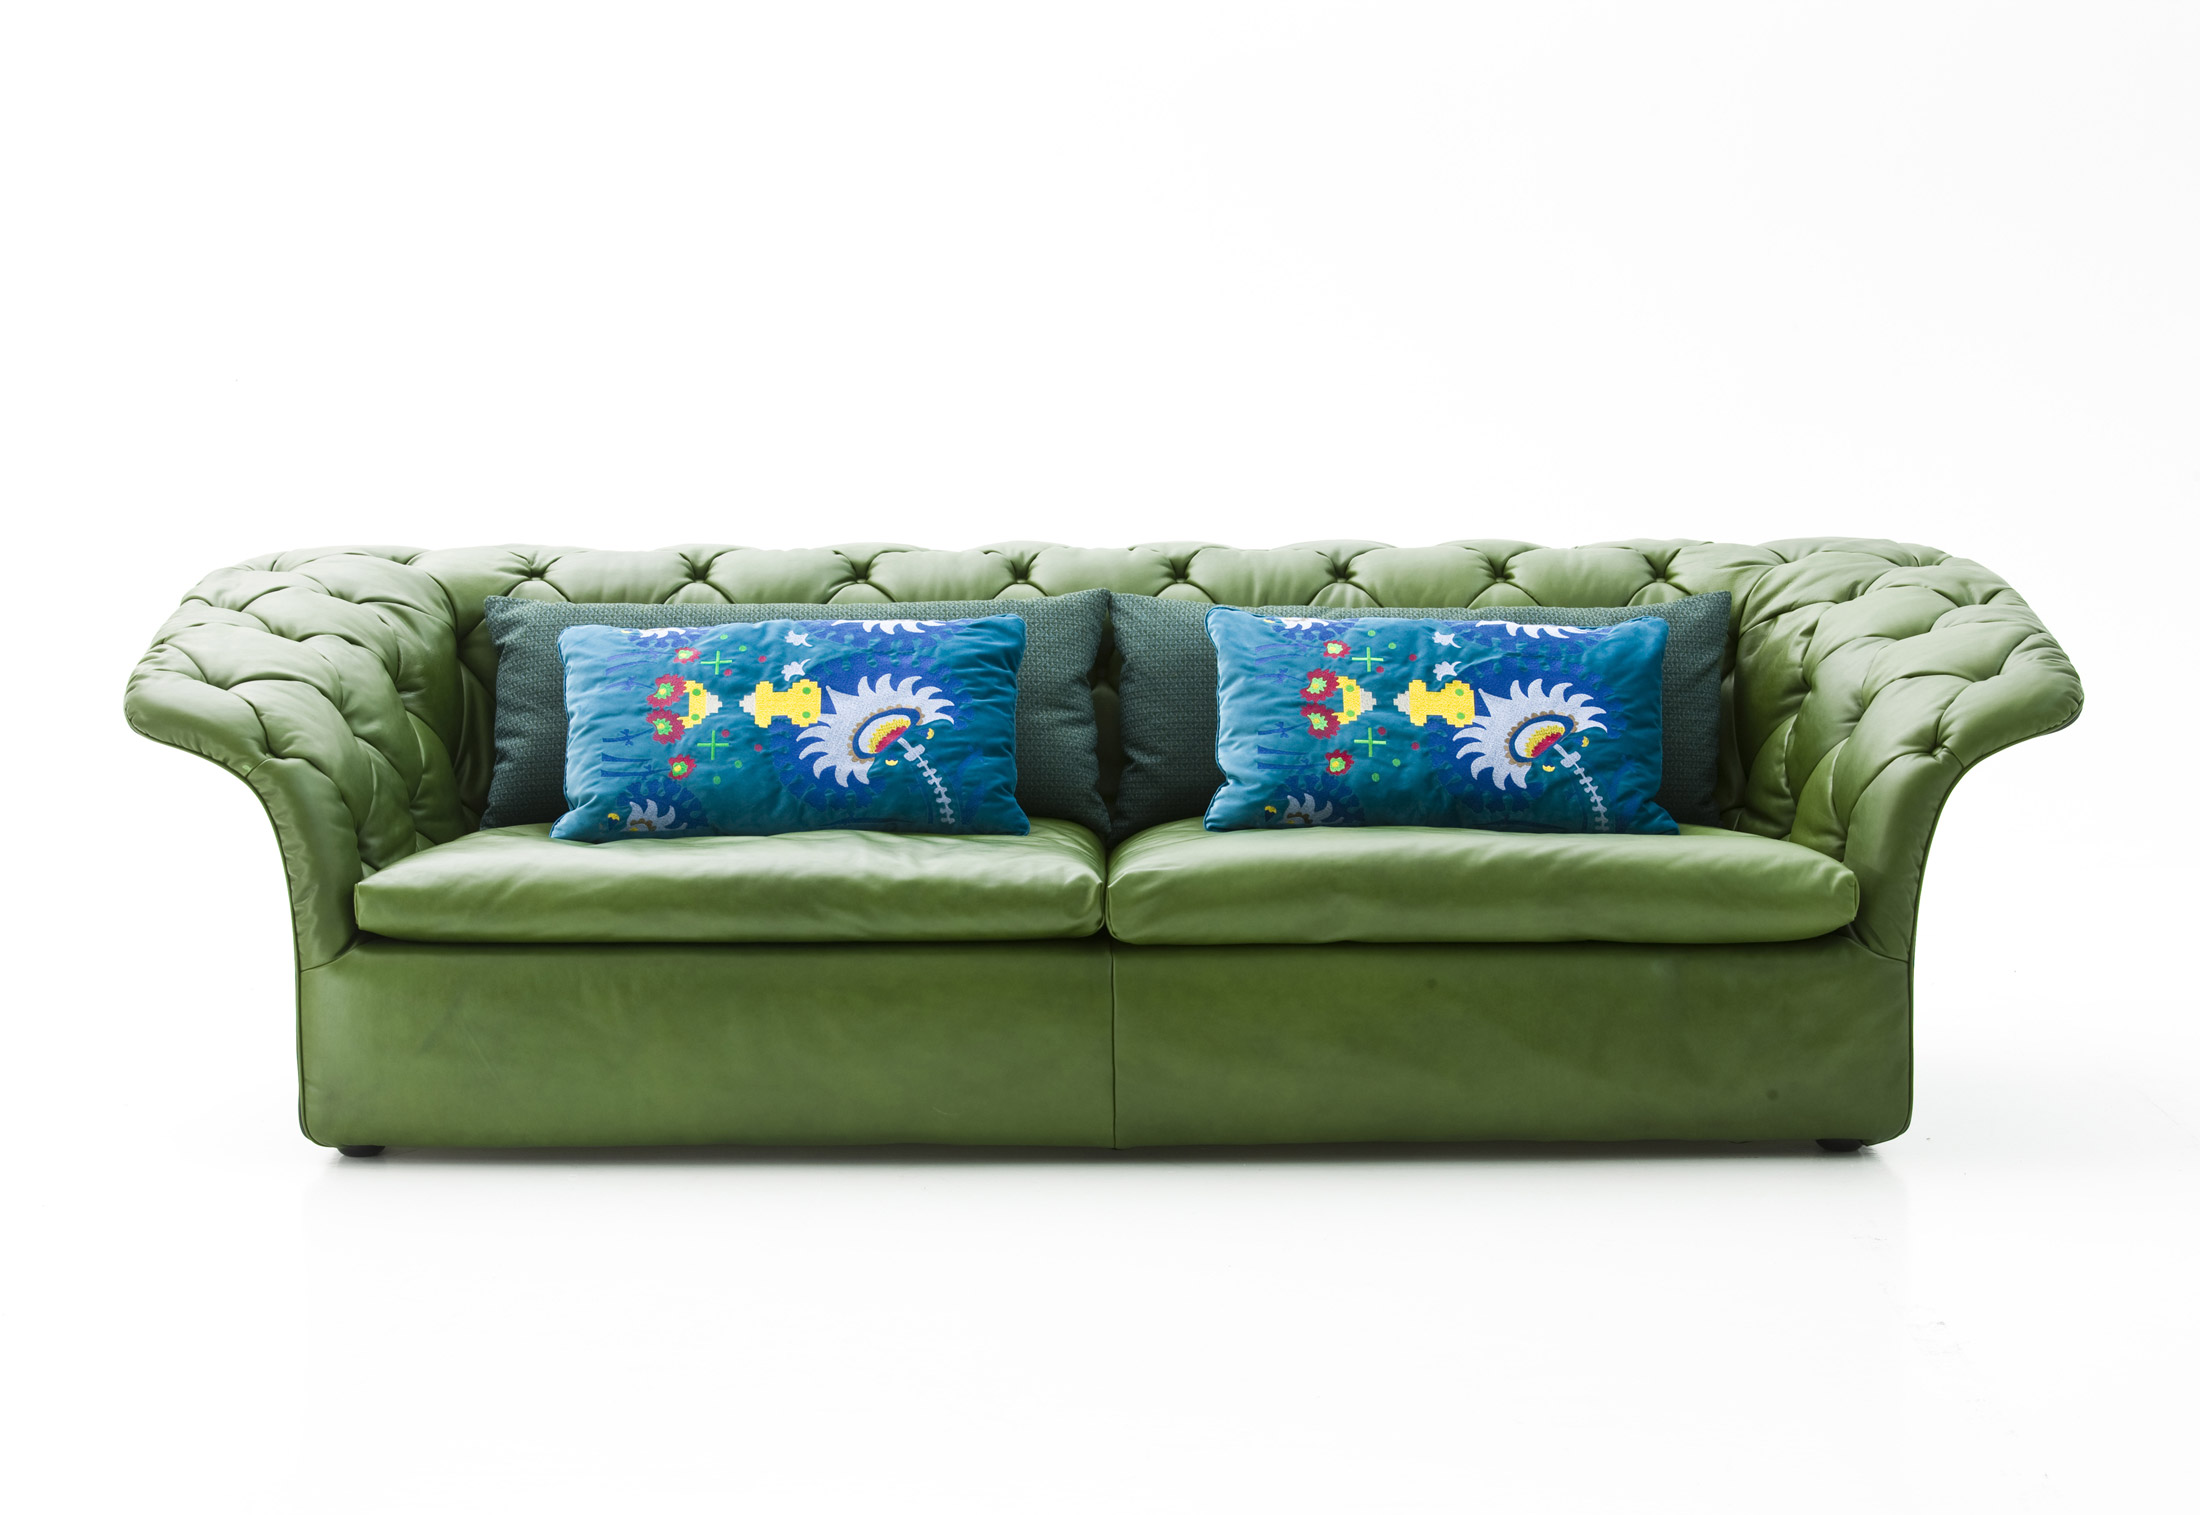 bohemian sofa bed sectional small by moroso stylepark